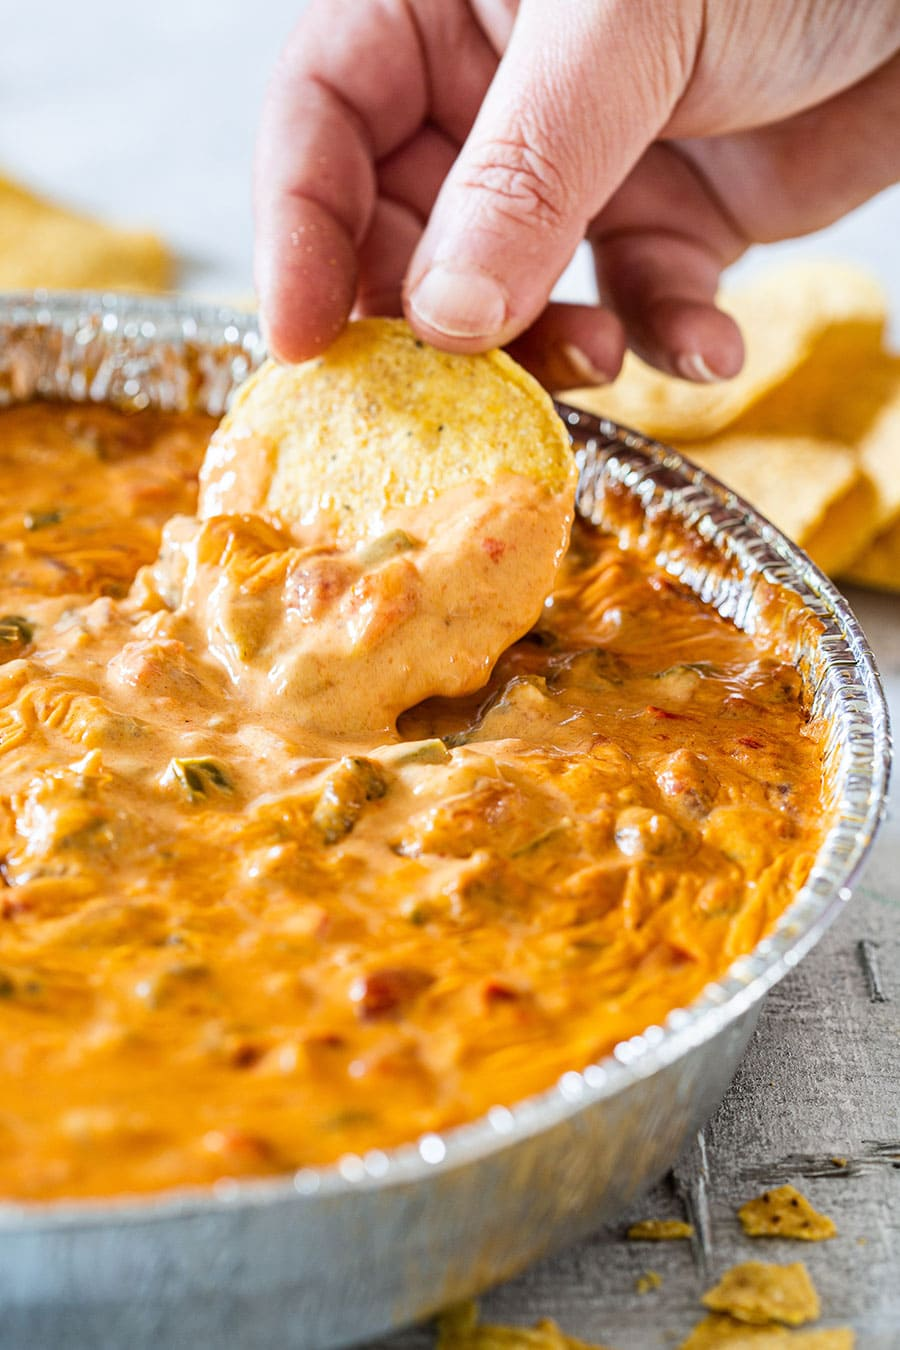 Dipping onto smoked queso.